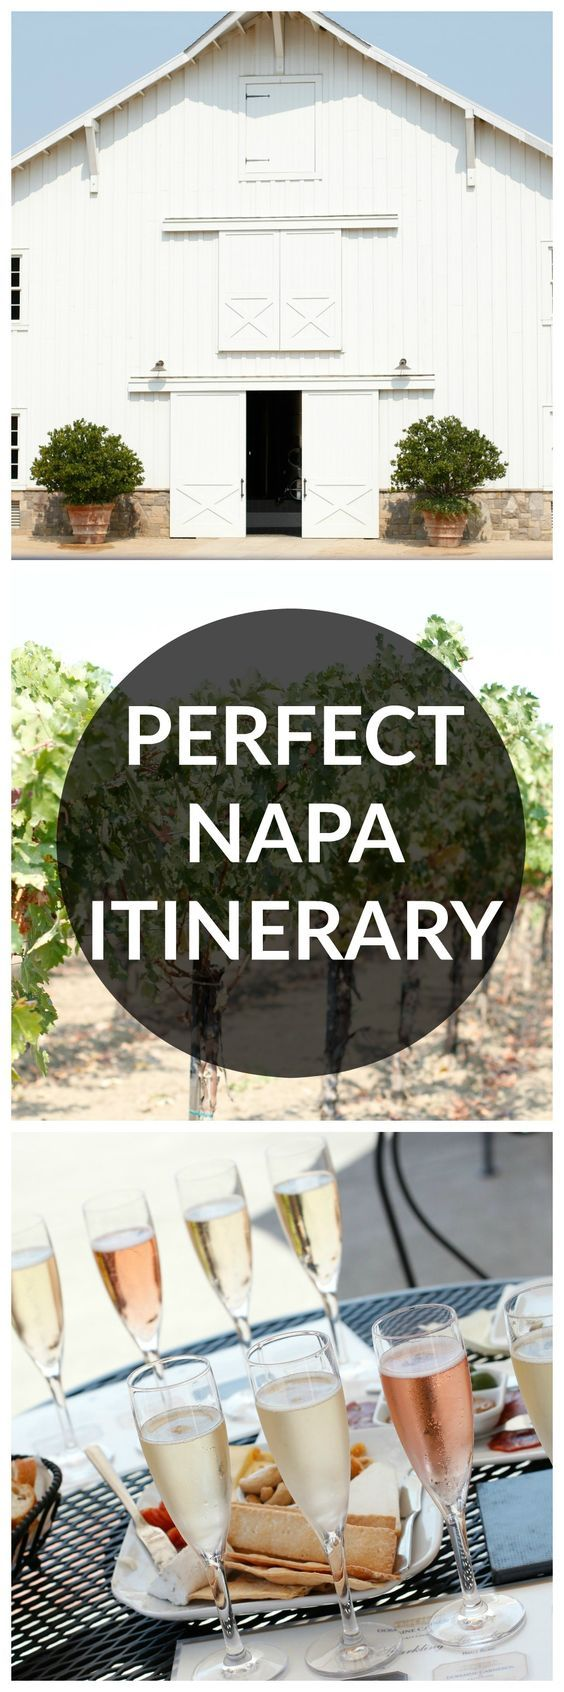 Beautiful Napa Valley Ideas On Pinterest Napa Valley - 11 amazing attractions and activities in napa valley